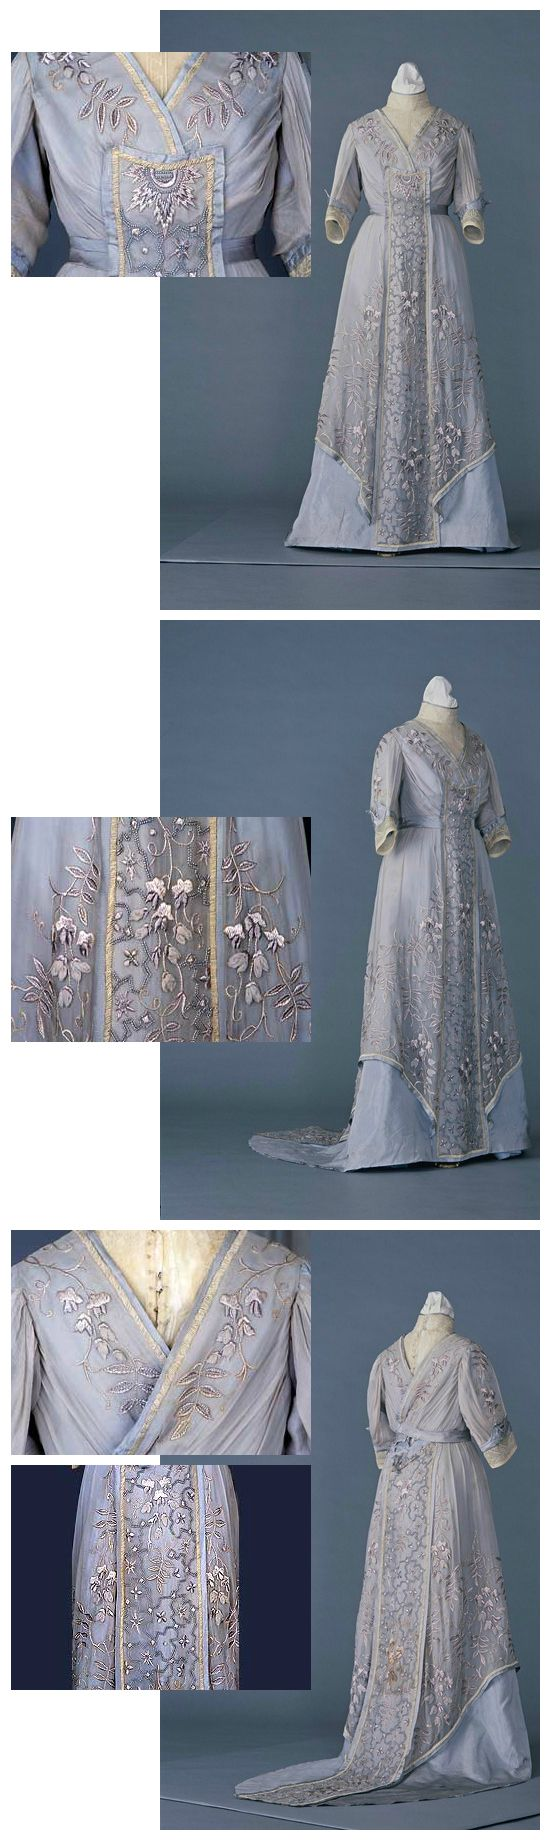 Dress (robe montante) belonging to Empress Shoken, made in France, Meiji era (1868-1912). Collection of Sugino Costume Museum (link: http://www.costumemuseum.jp/french/collection/j_isho/j152.html#).